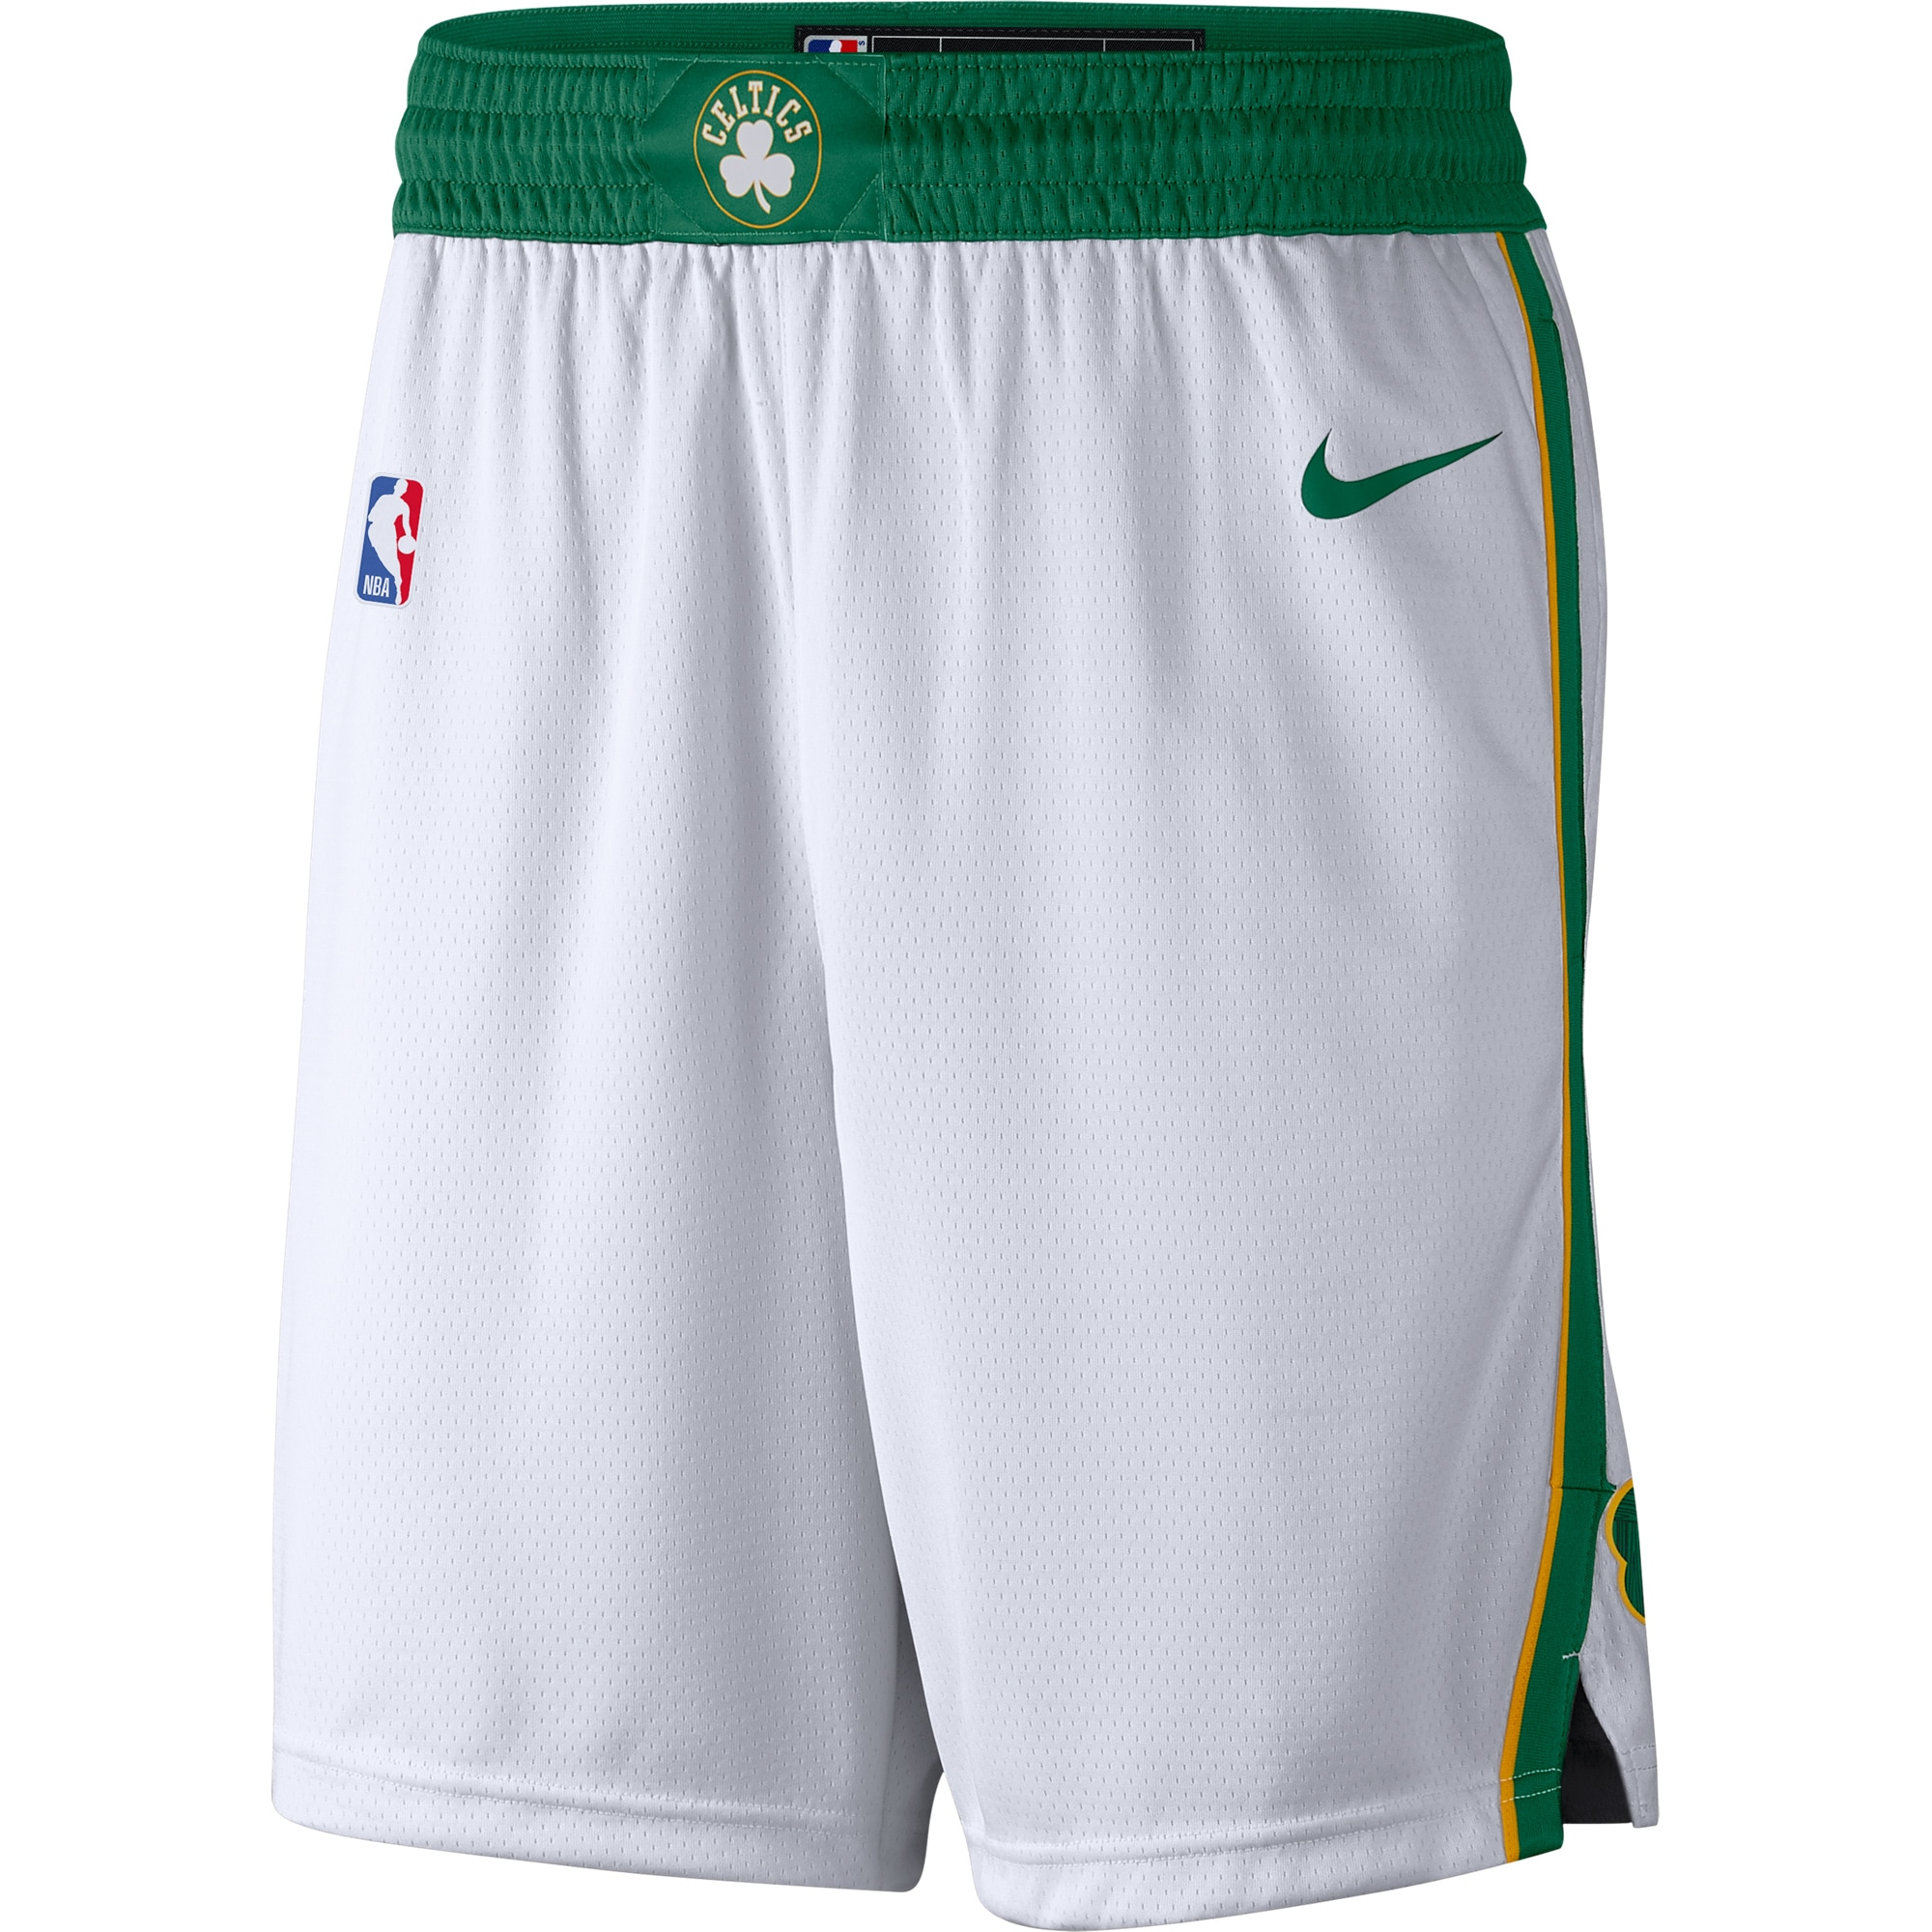 Boston Celtics Nike City Edition Swingman Performance Shorts - White